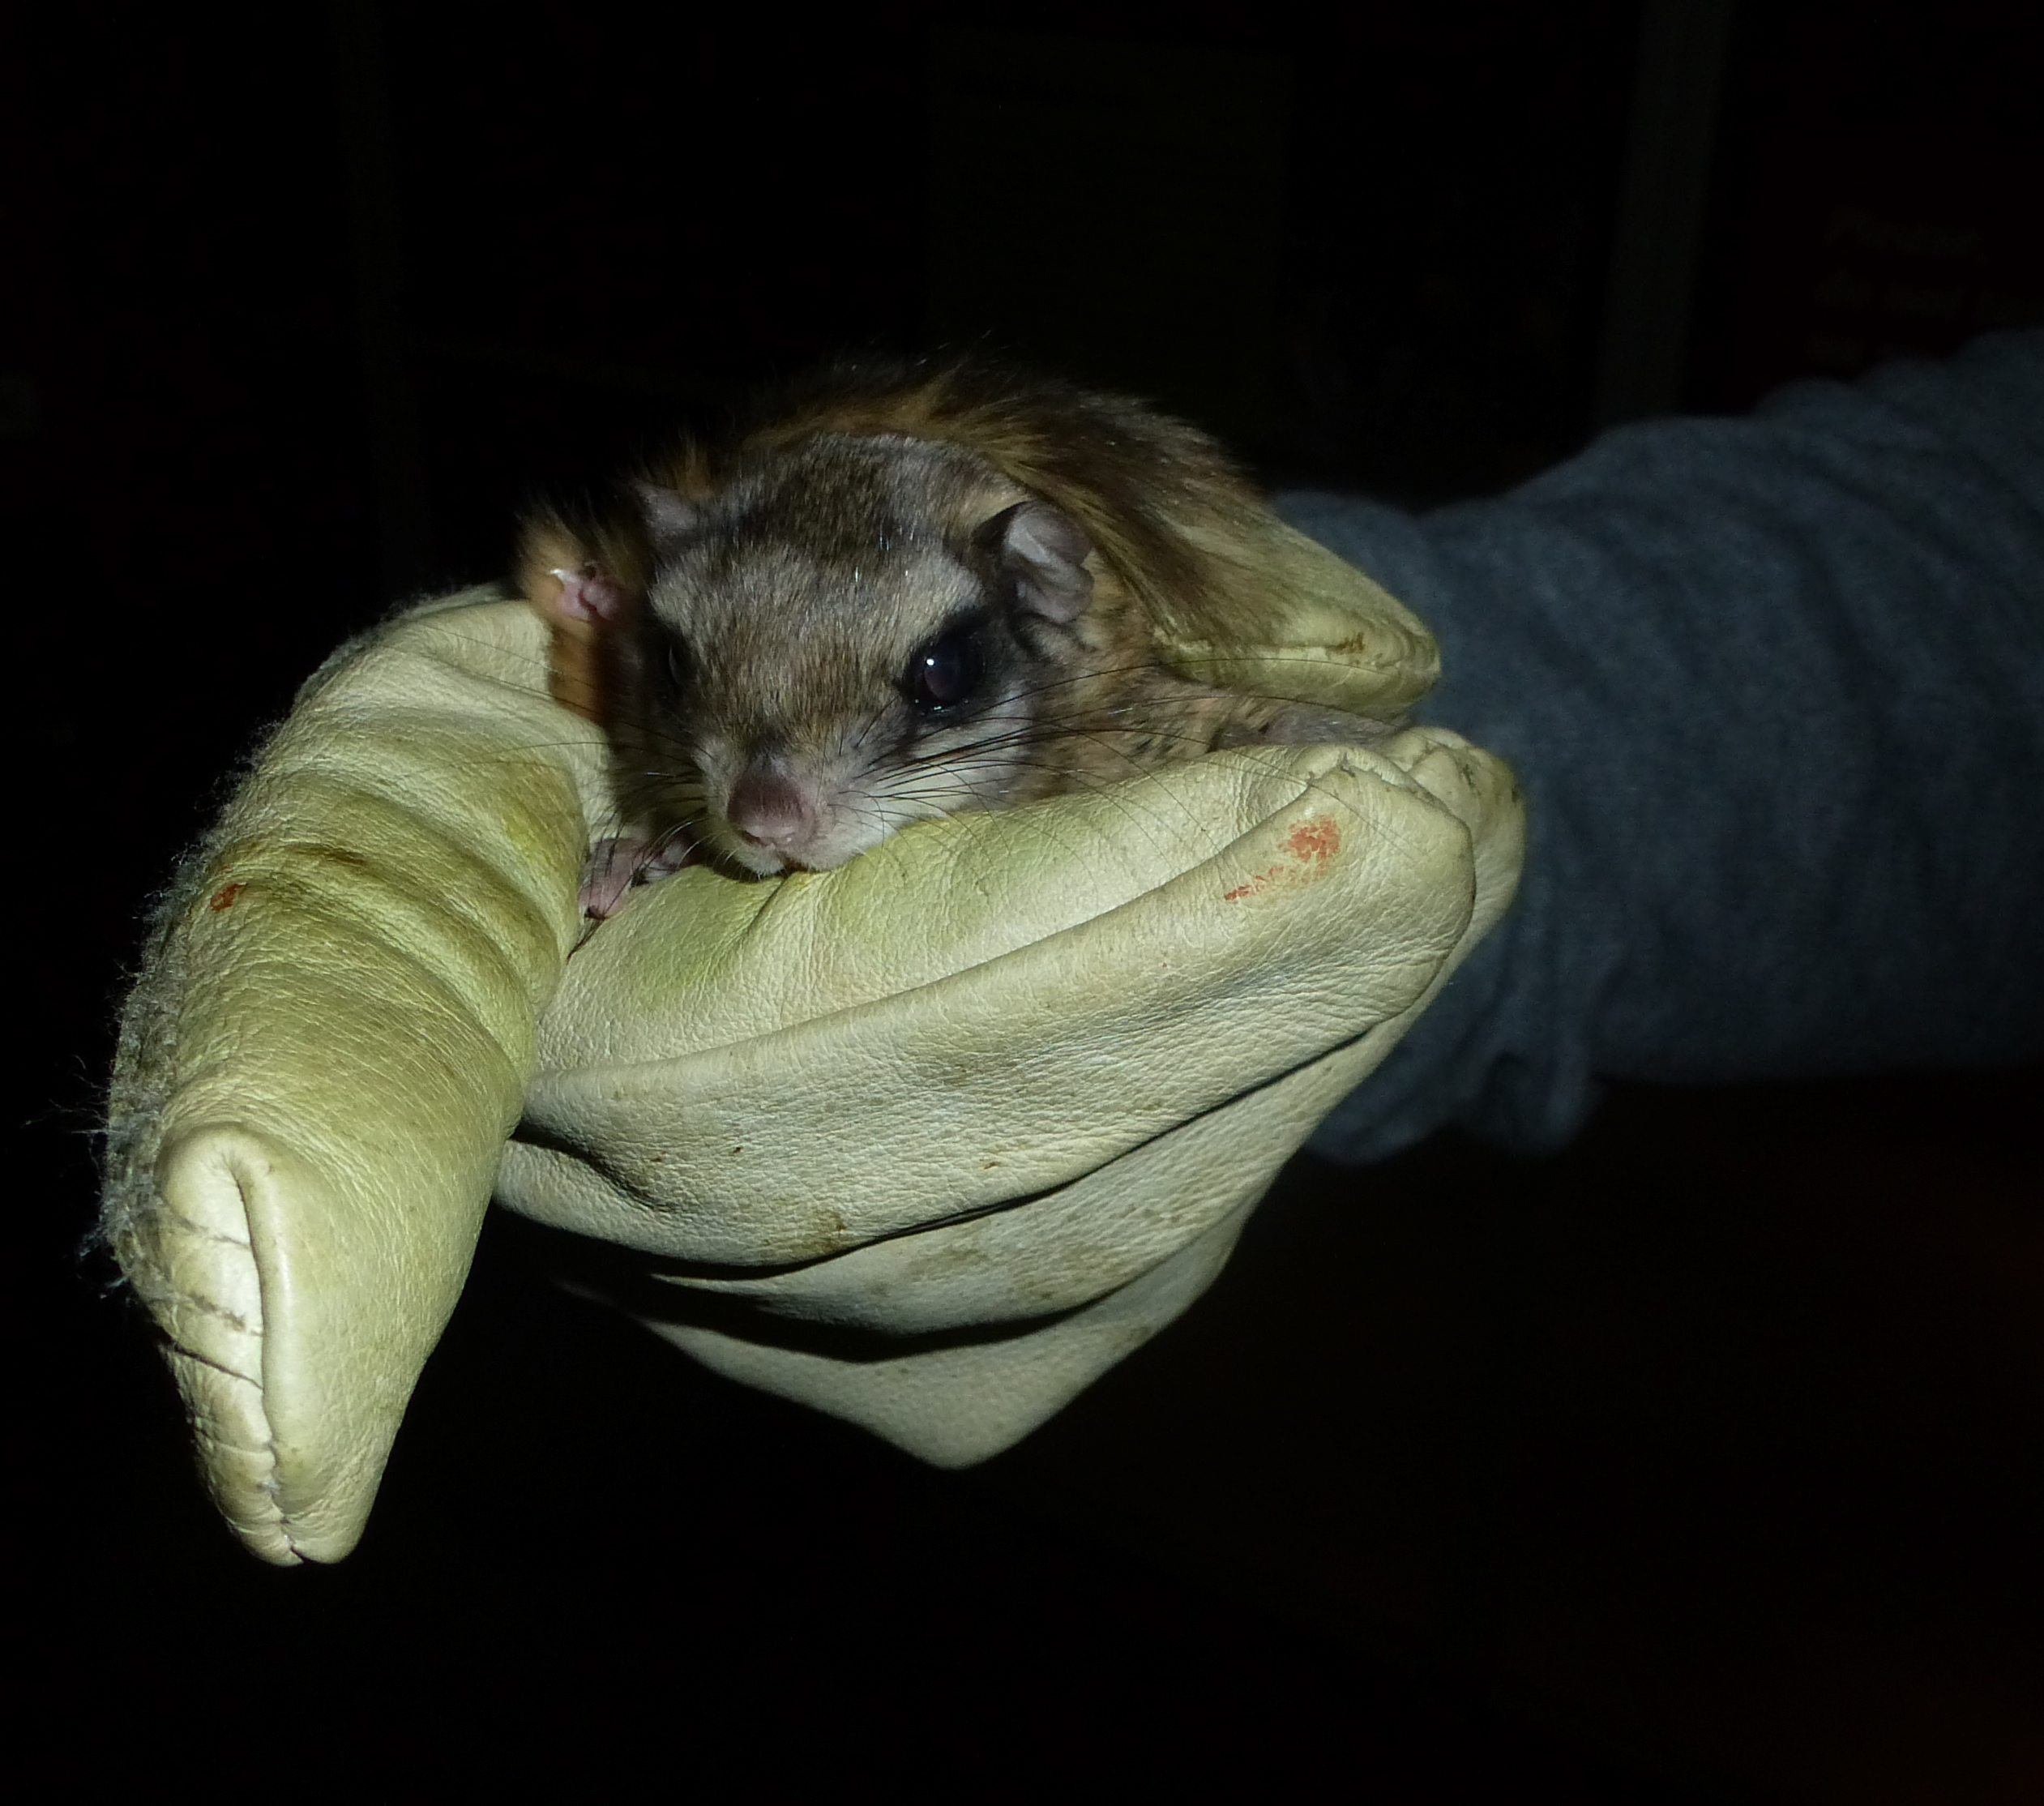 BatGuys LLC - Bat Removal, Squirrel Removal and Nuisance Flying squirrel poop pictures